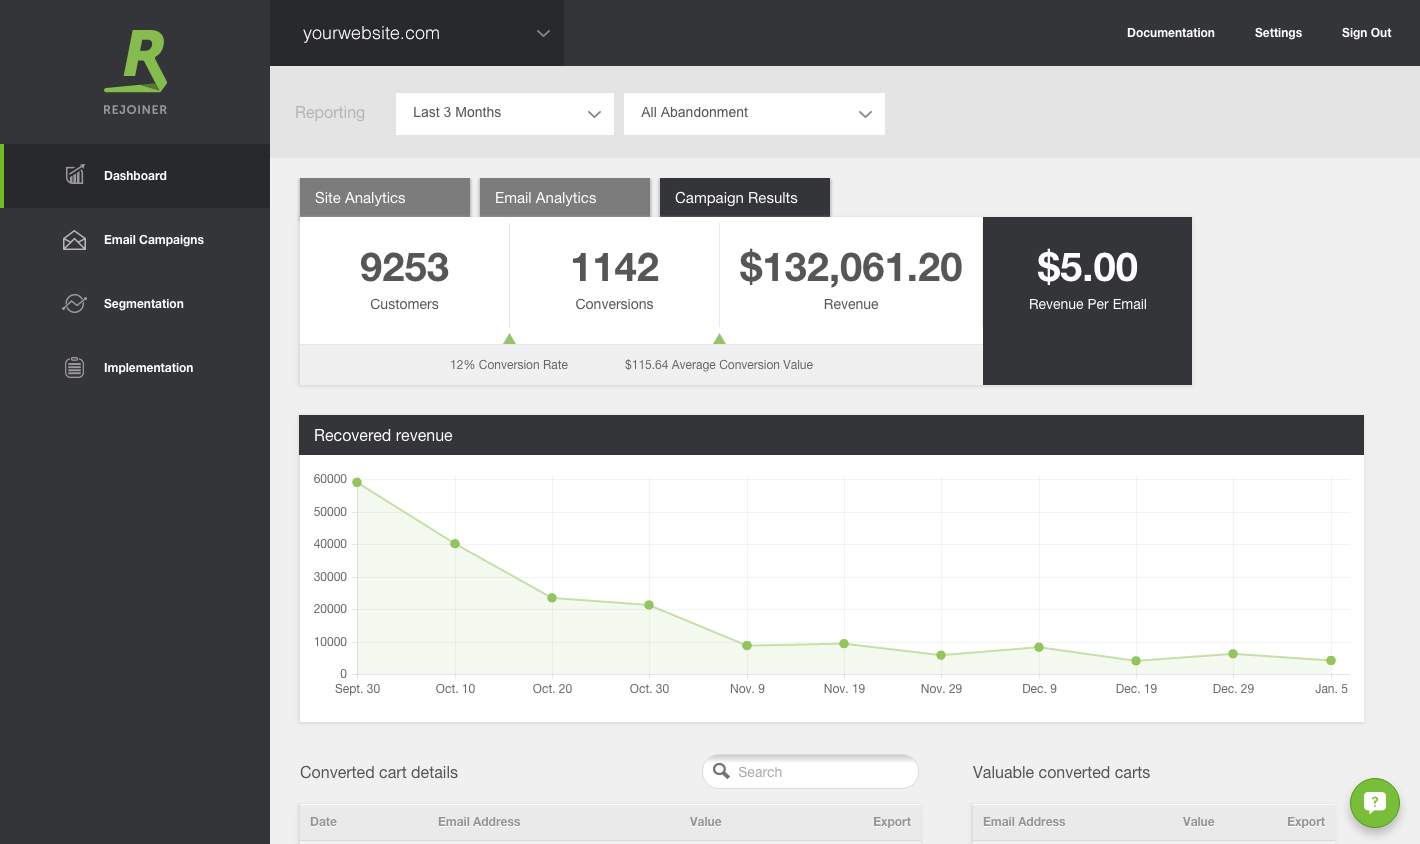 Rejoiner's campaign results dashboard shows your conversions, total campaign revenue and revenue per email generated